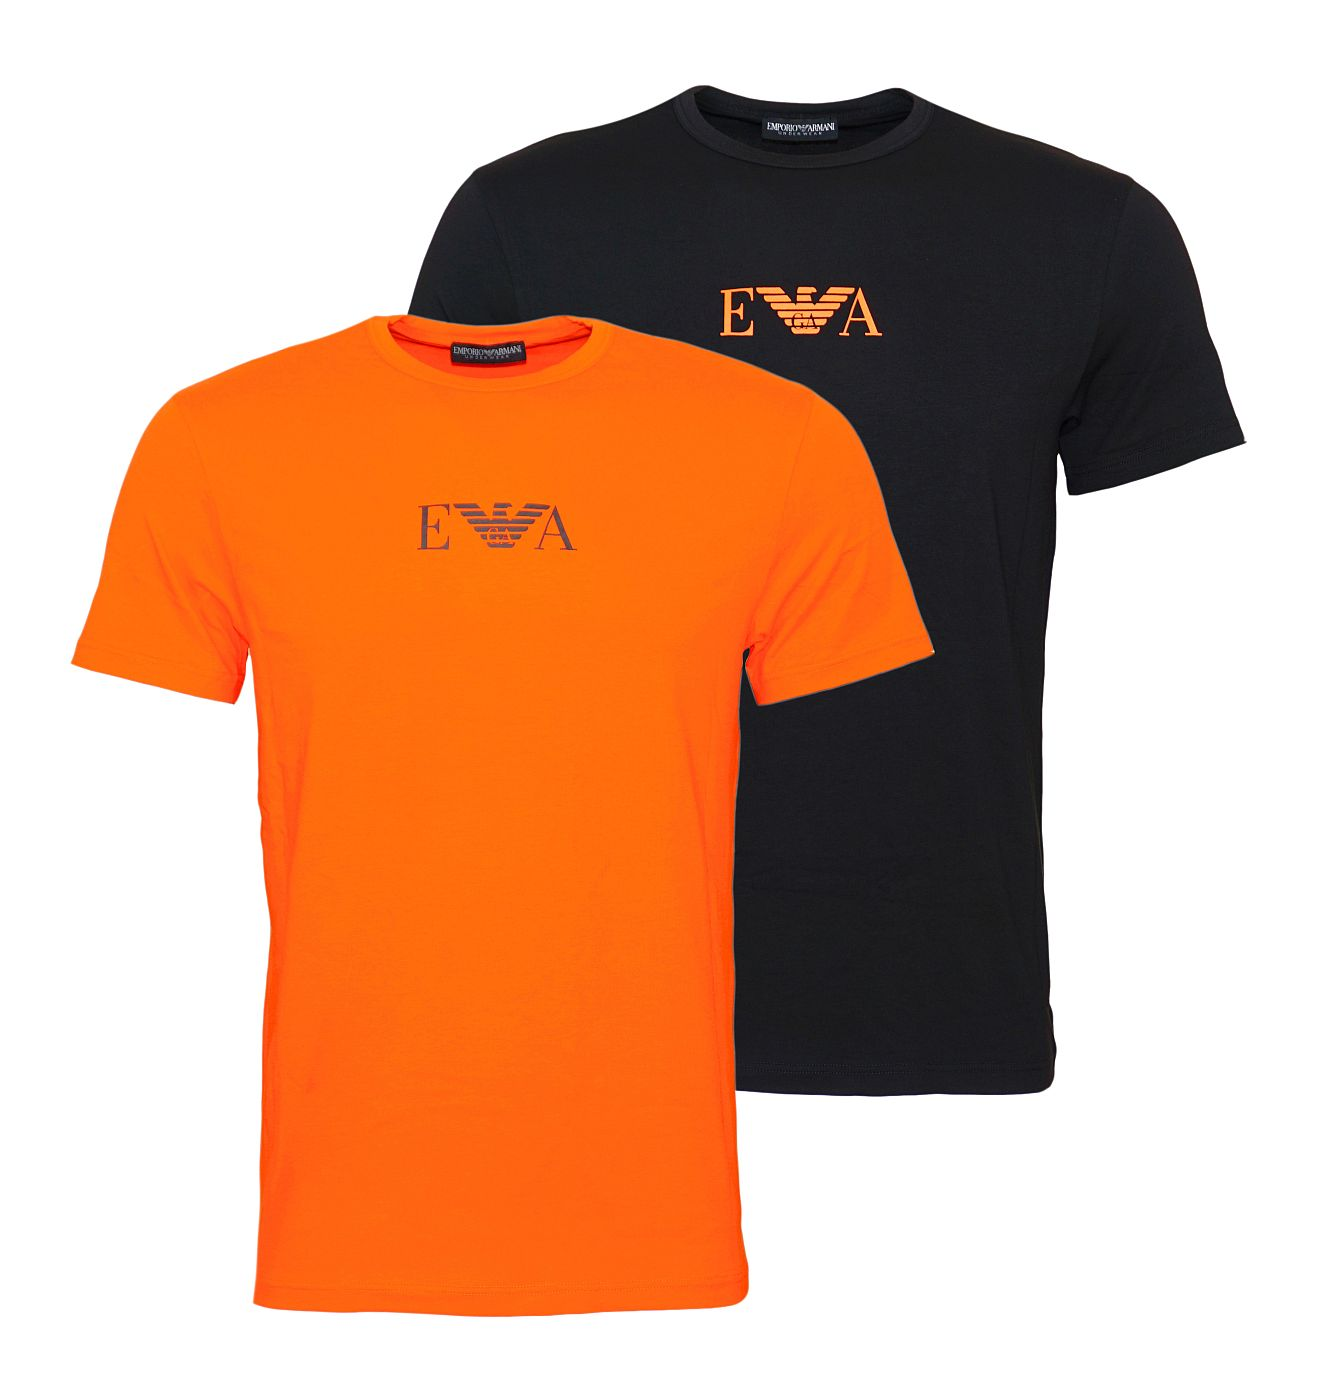 Emporio Armani 2er Pack T-Shirts Rundhals 111267 8A715 04220 NERO/FIAMMA SH18-EAT1